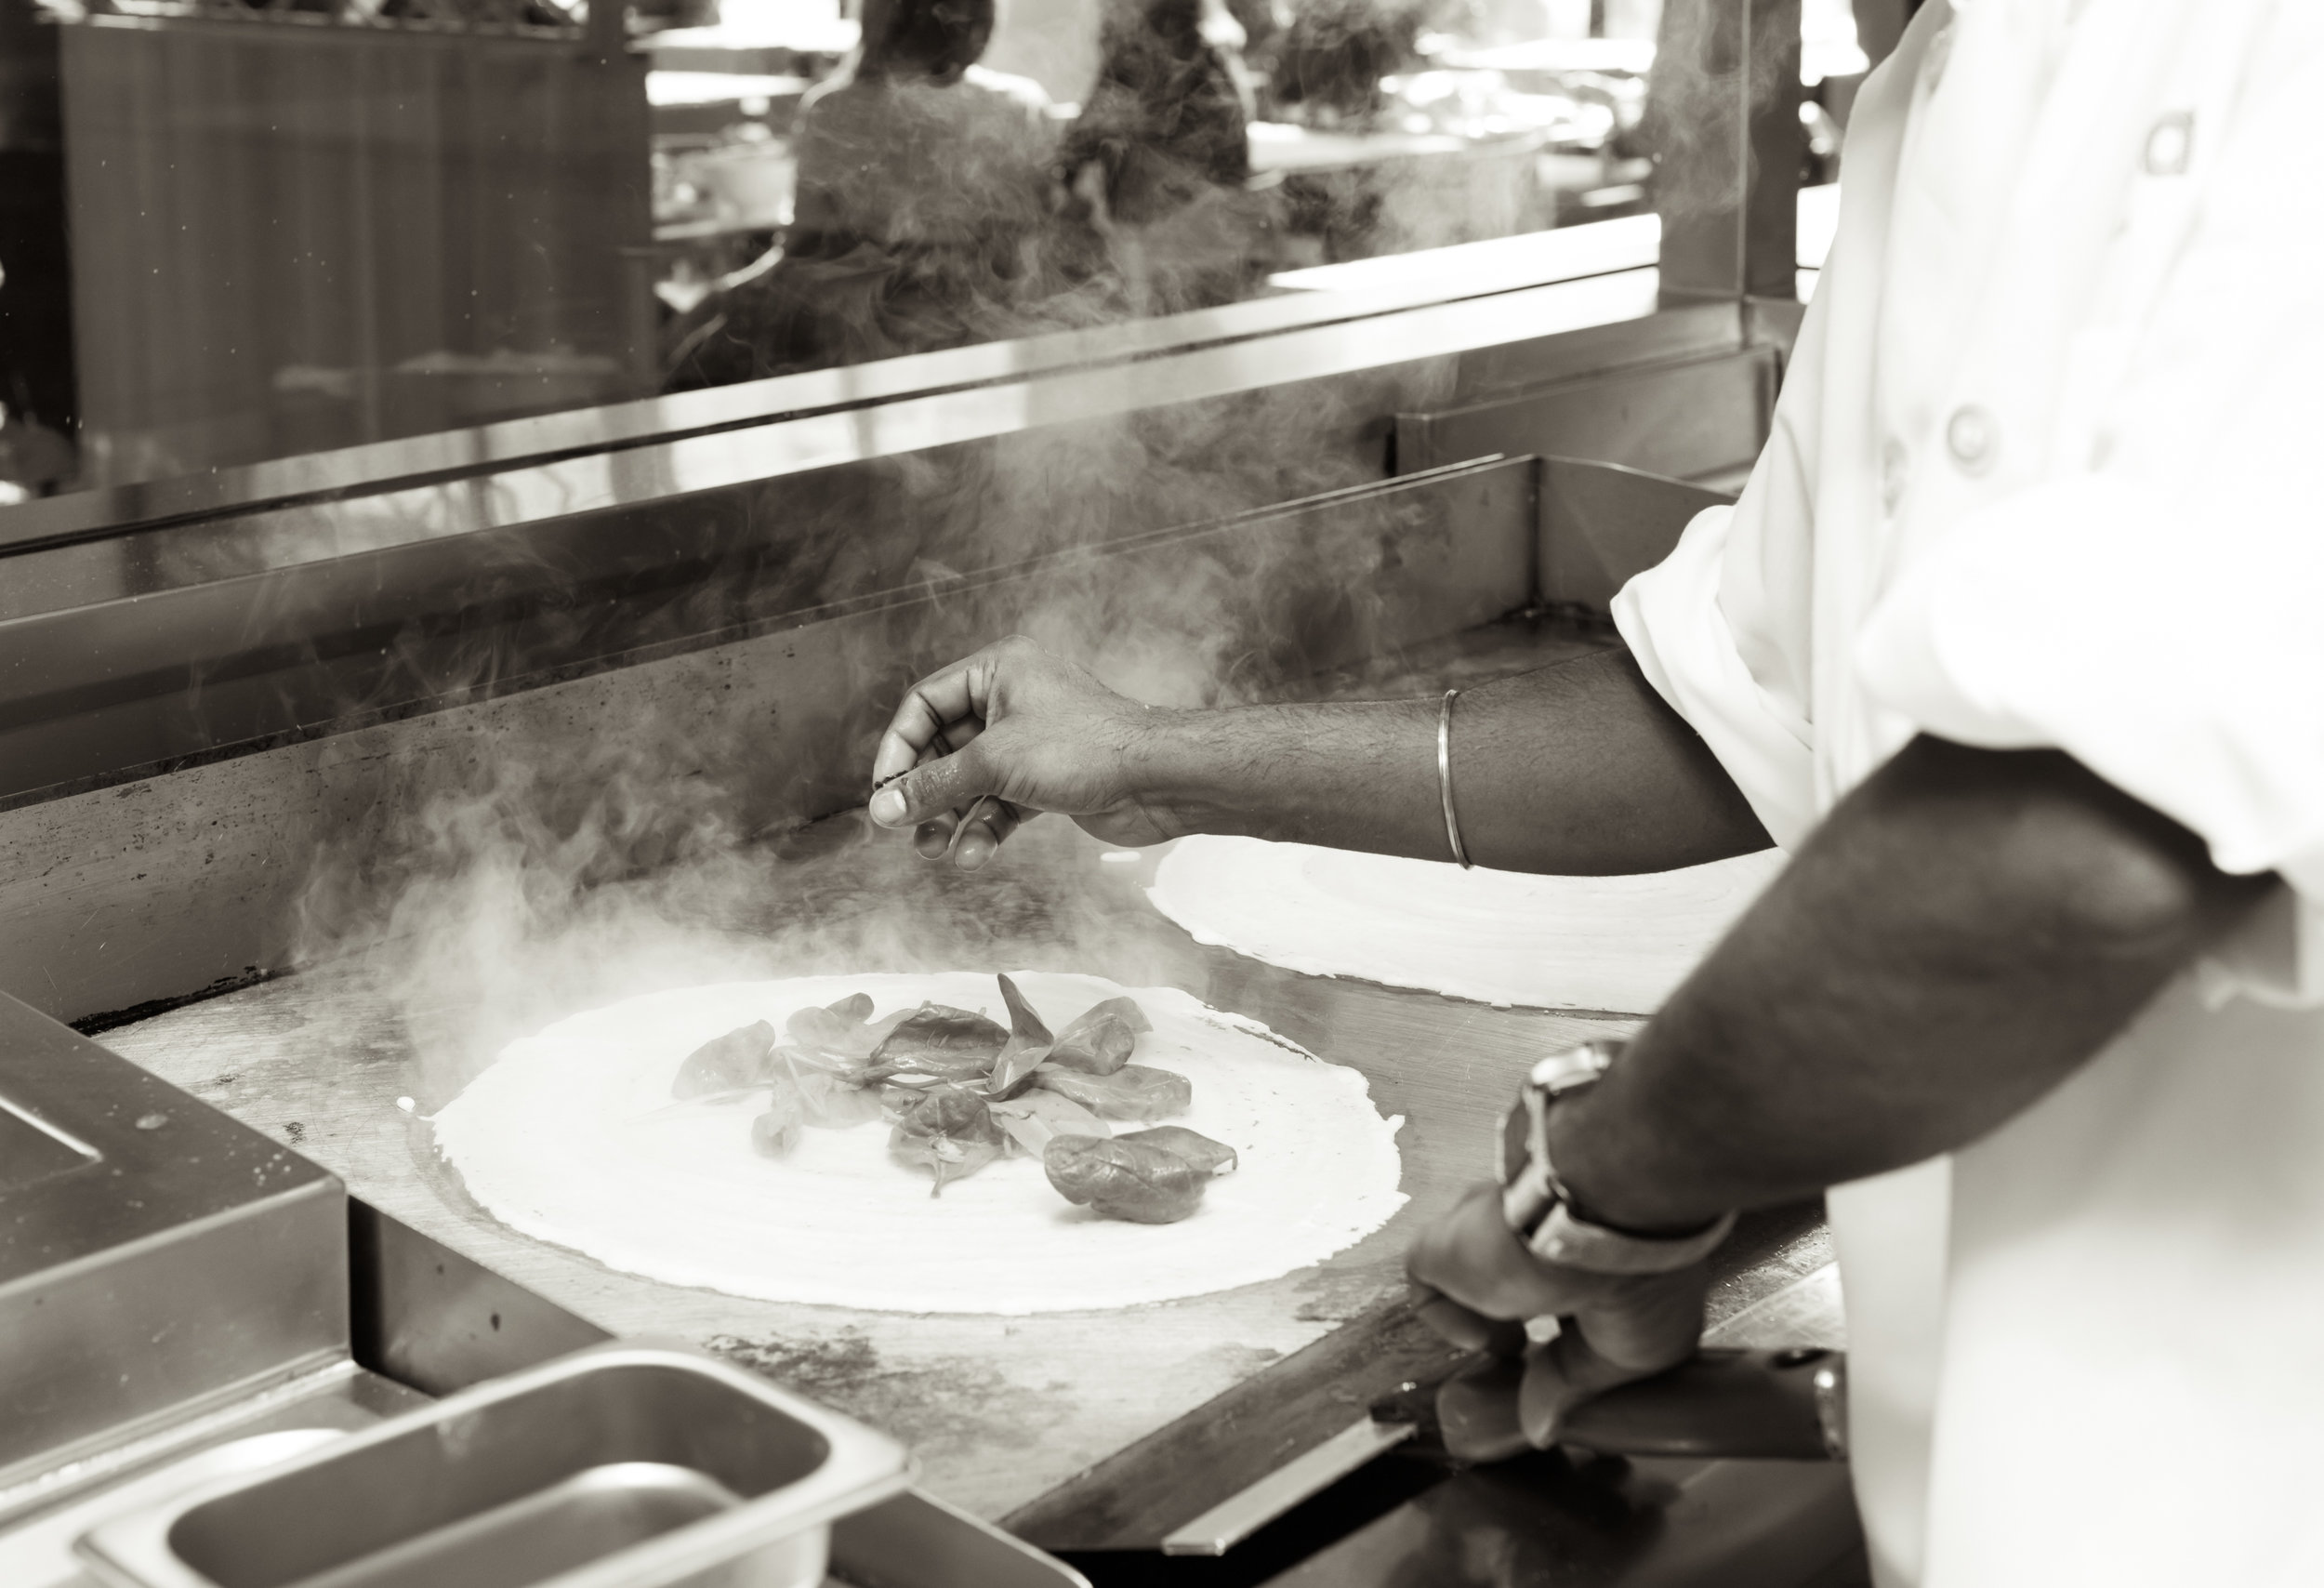 Dosa griddle